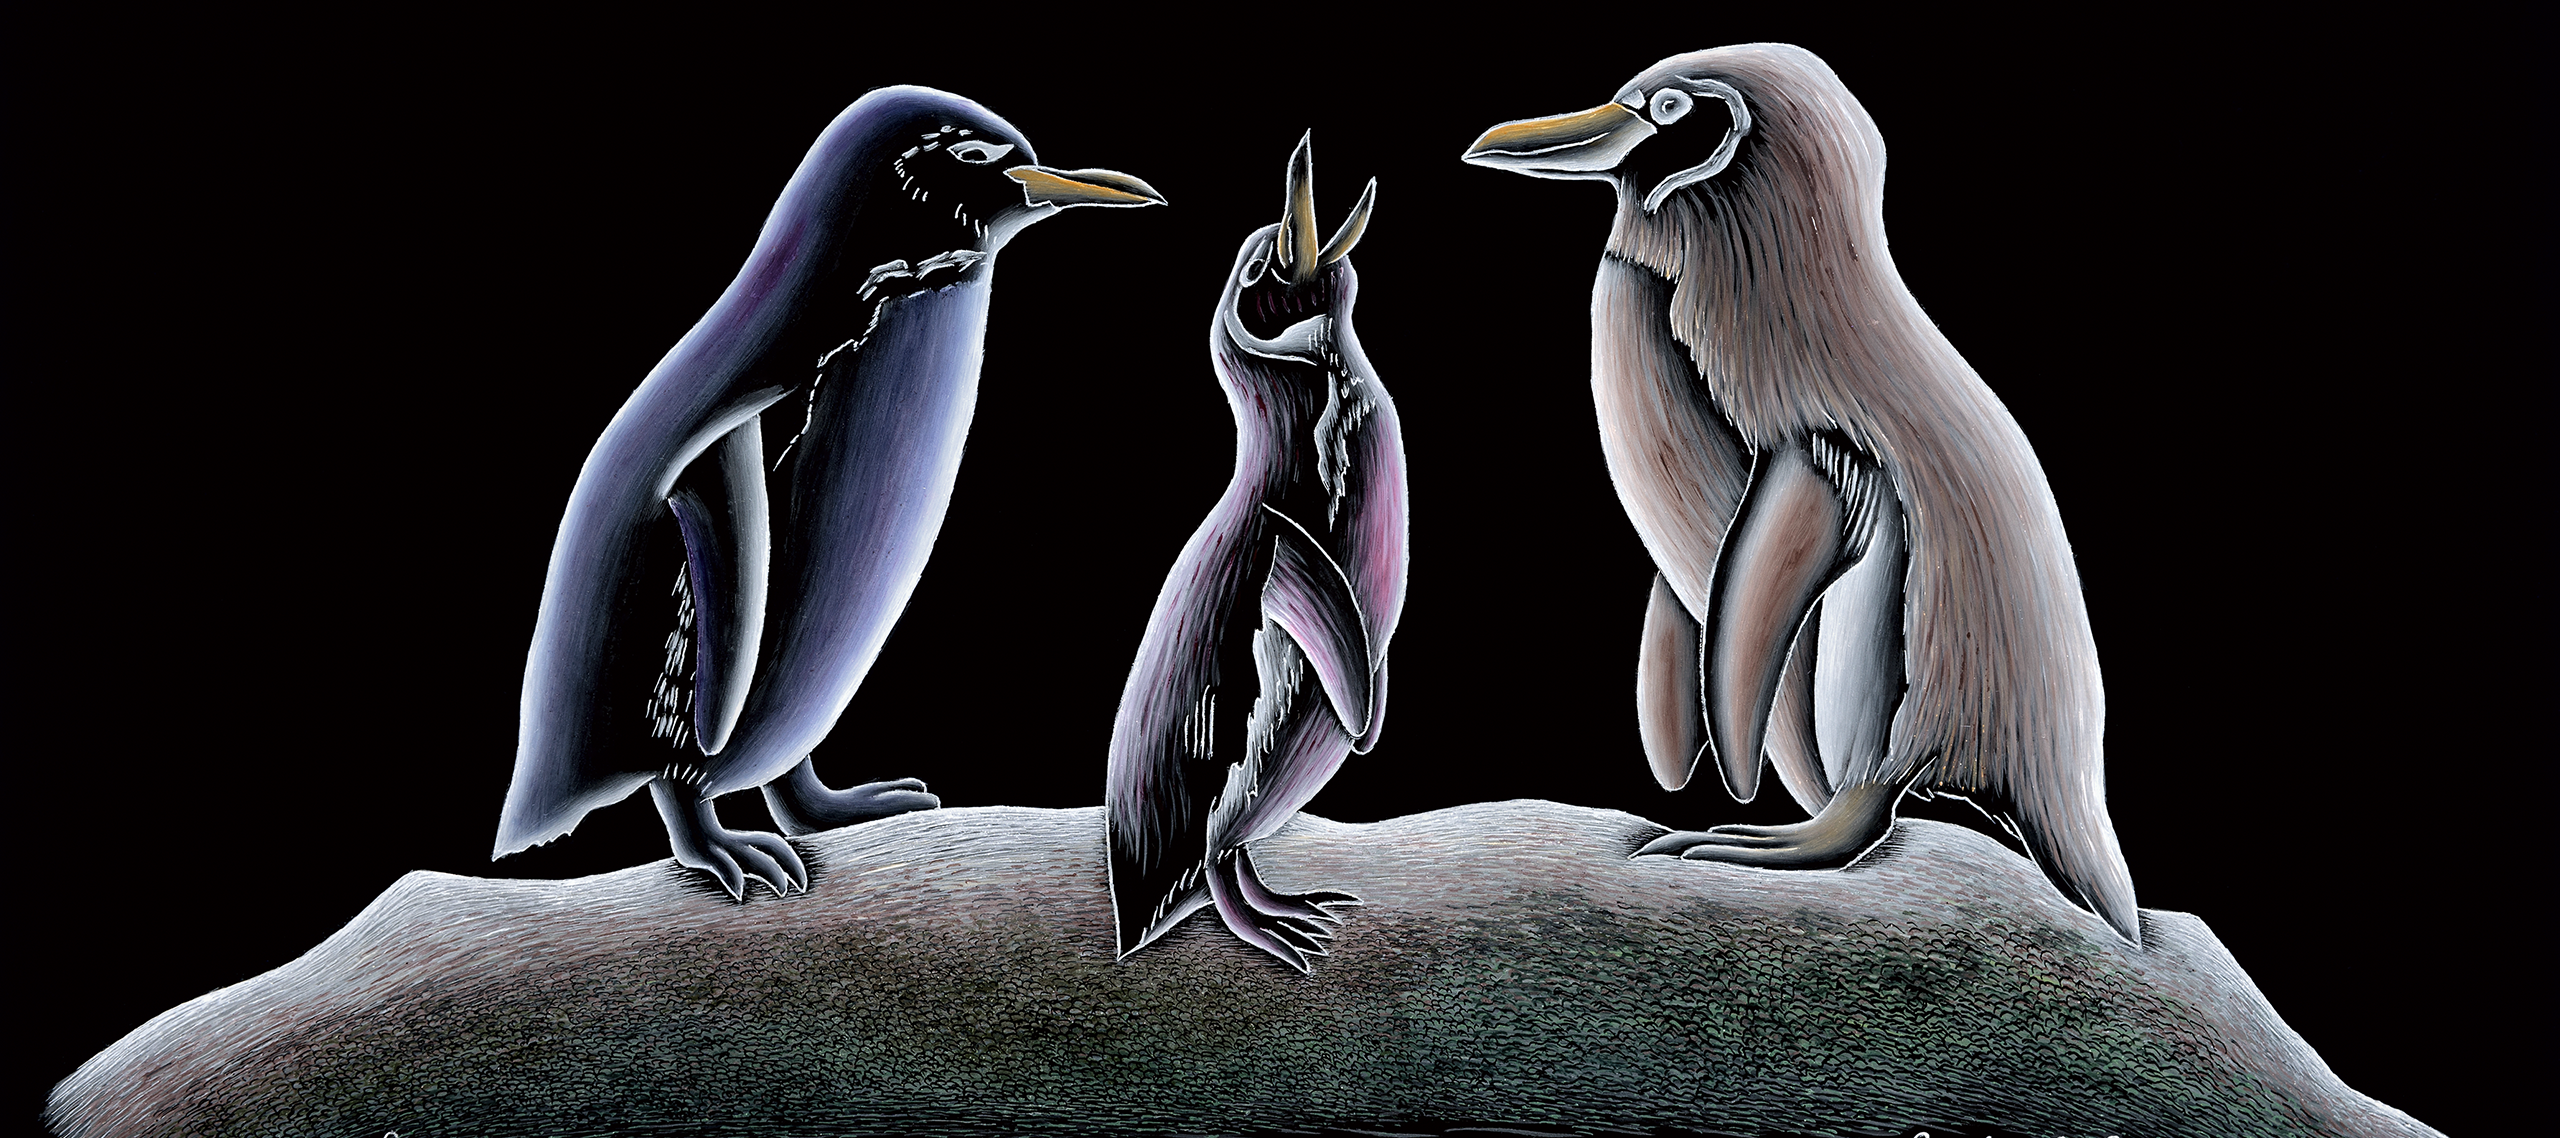 Painting on black glass of three penguins. The smallest is standing in the middle with its bill open to the sky as if waiting to be fead while the two larger penguins stare towards it. The words 'Only 1600 pair left' and 'killing them off' is written by hand at the bottom.